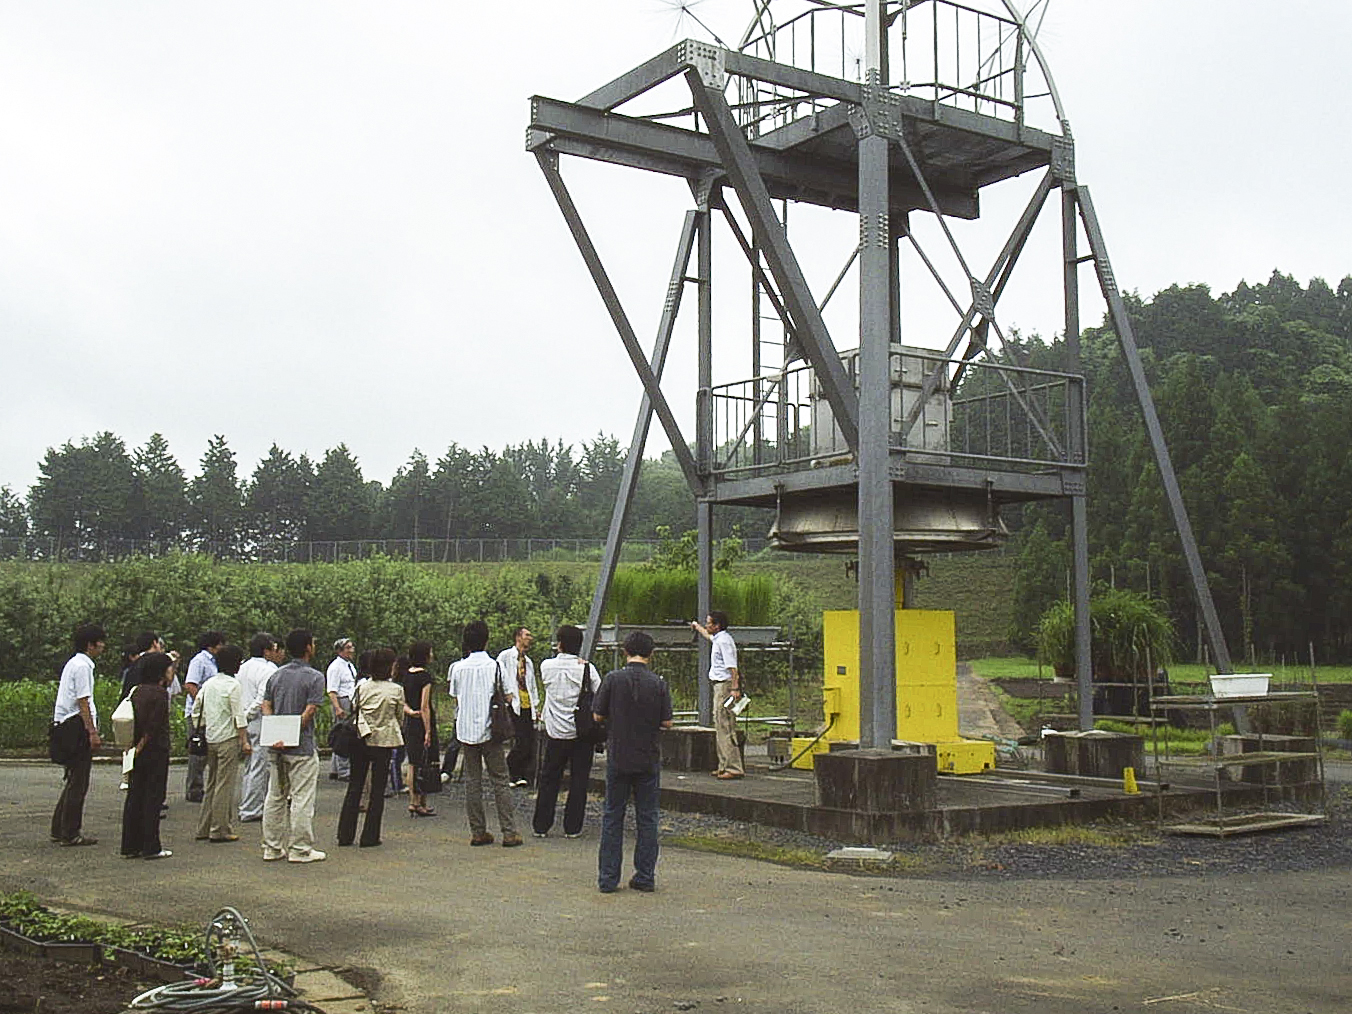 The radiation source is lowered into the ground using a mechanical gantry to allow safe access to the field, 2016. Photograph by Govinda Rizal